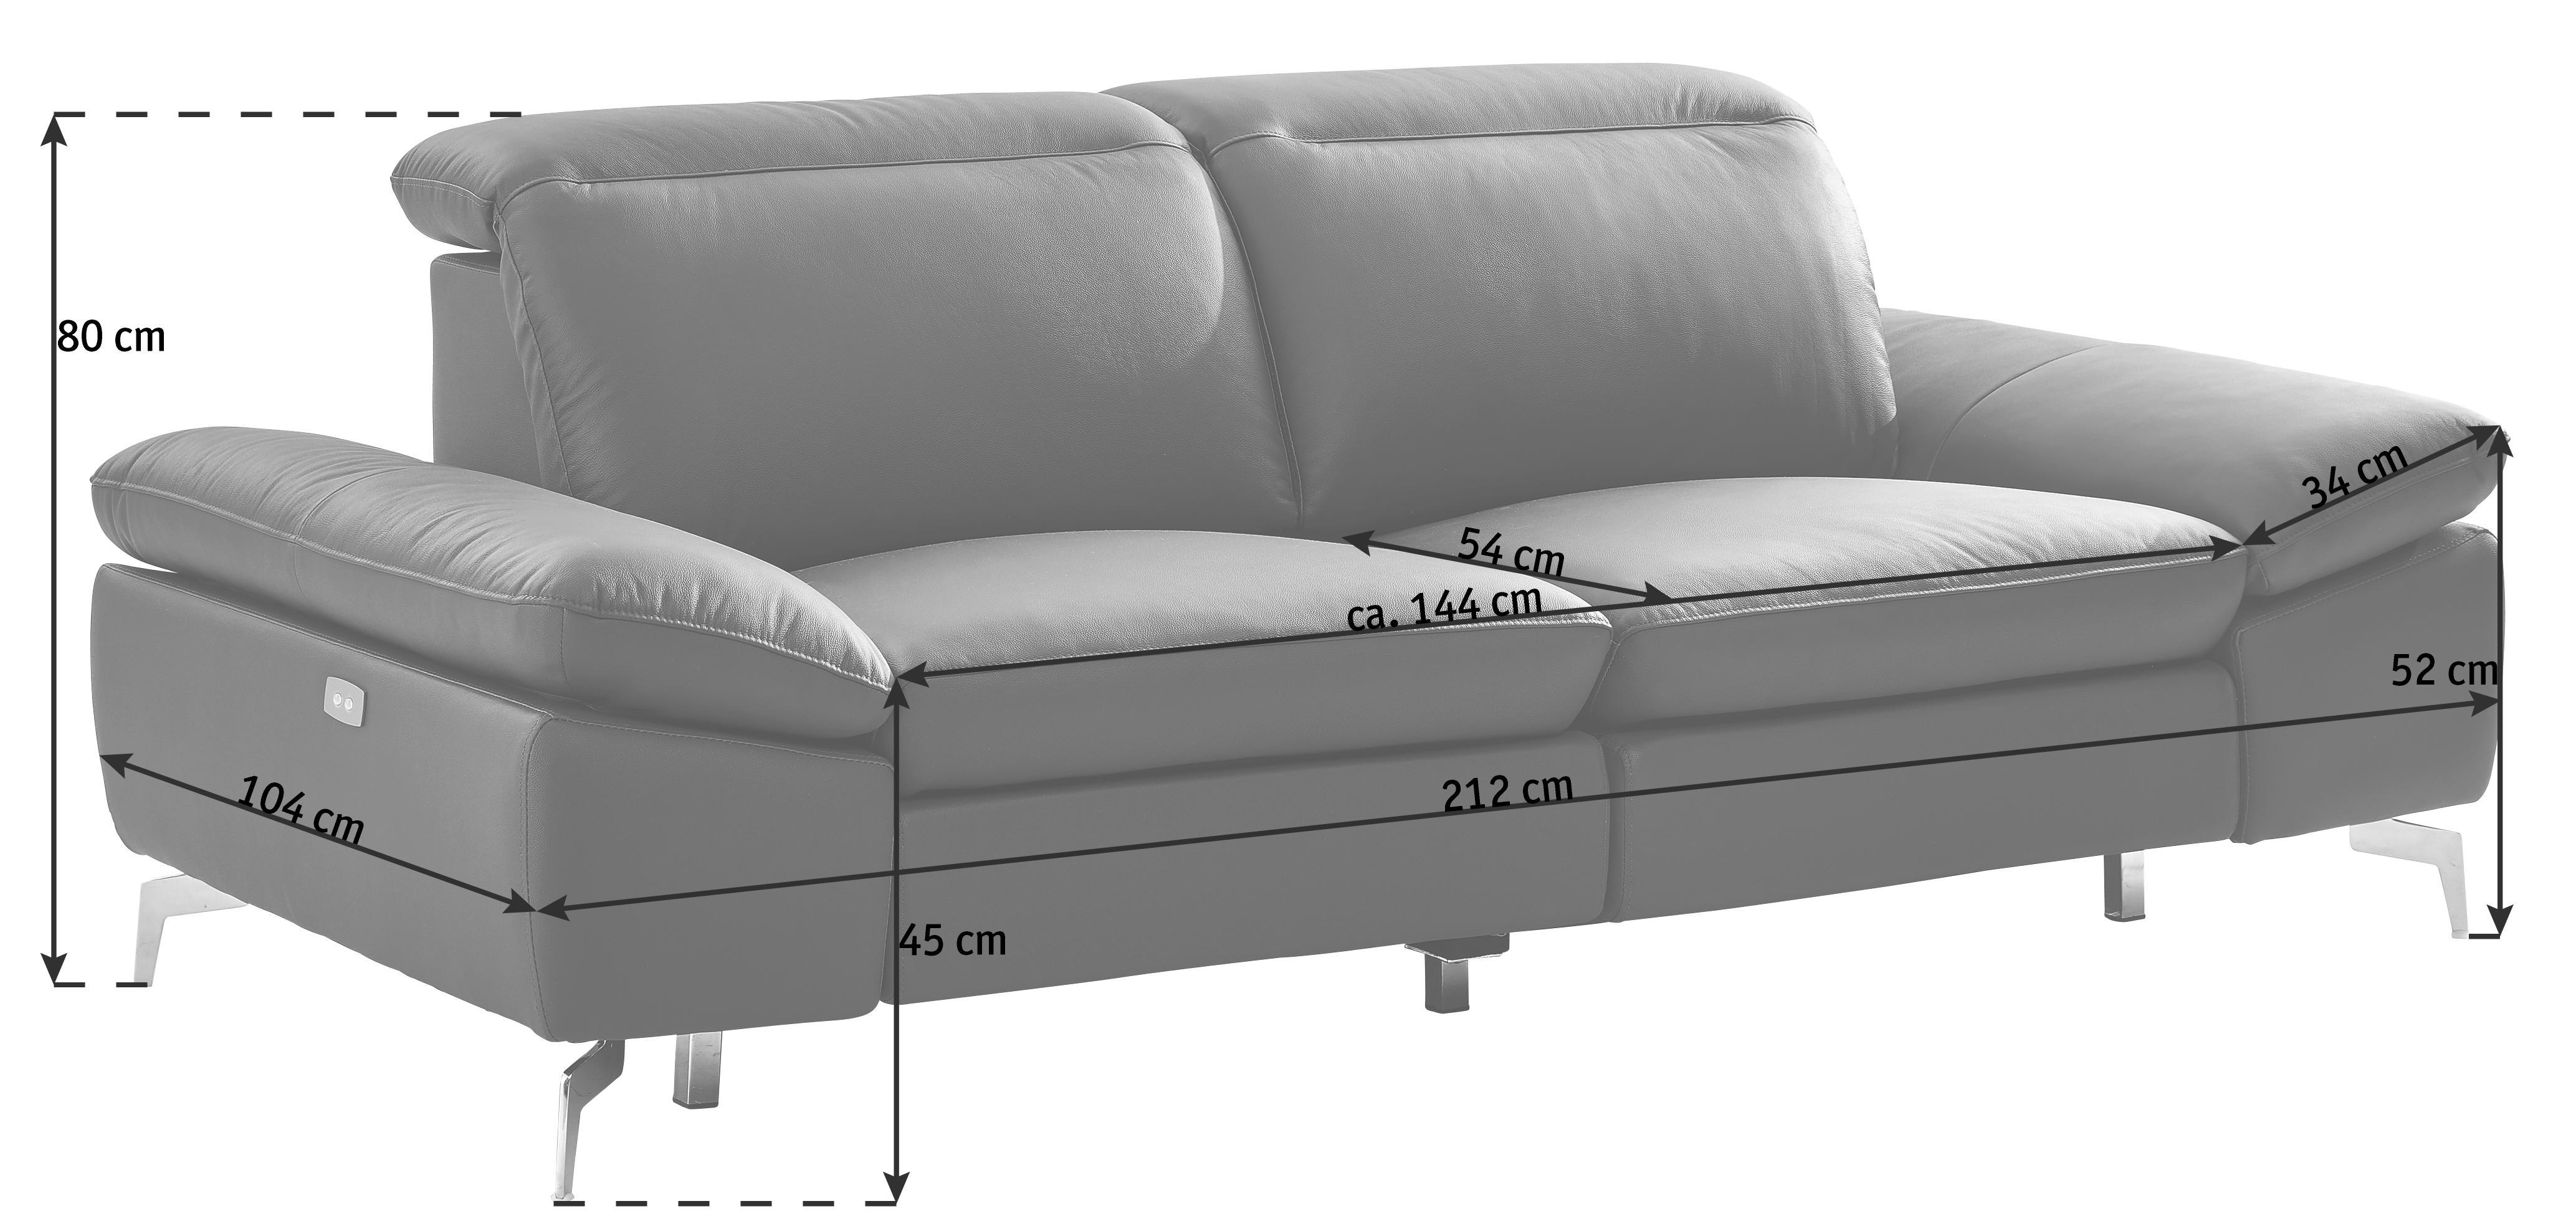 Bettsofa Hubacher Ecksofa Dunkelgrün | Sofa Dunkelgrun Chaiselongue Rodeo